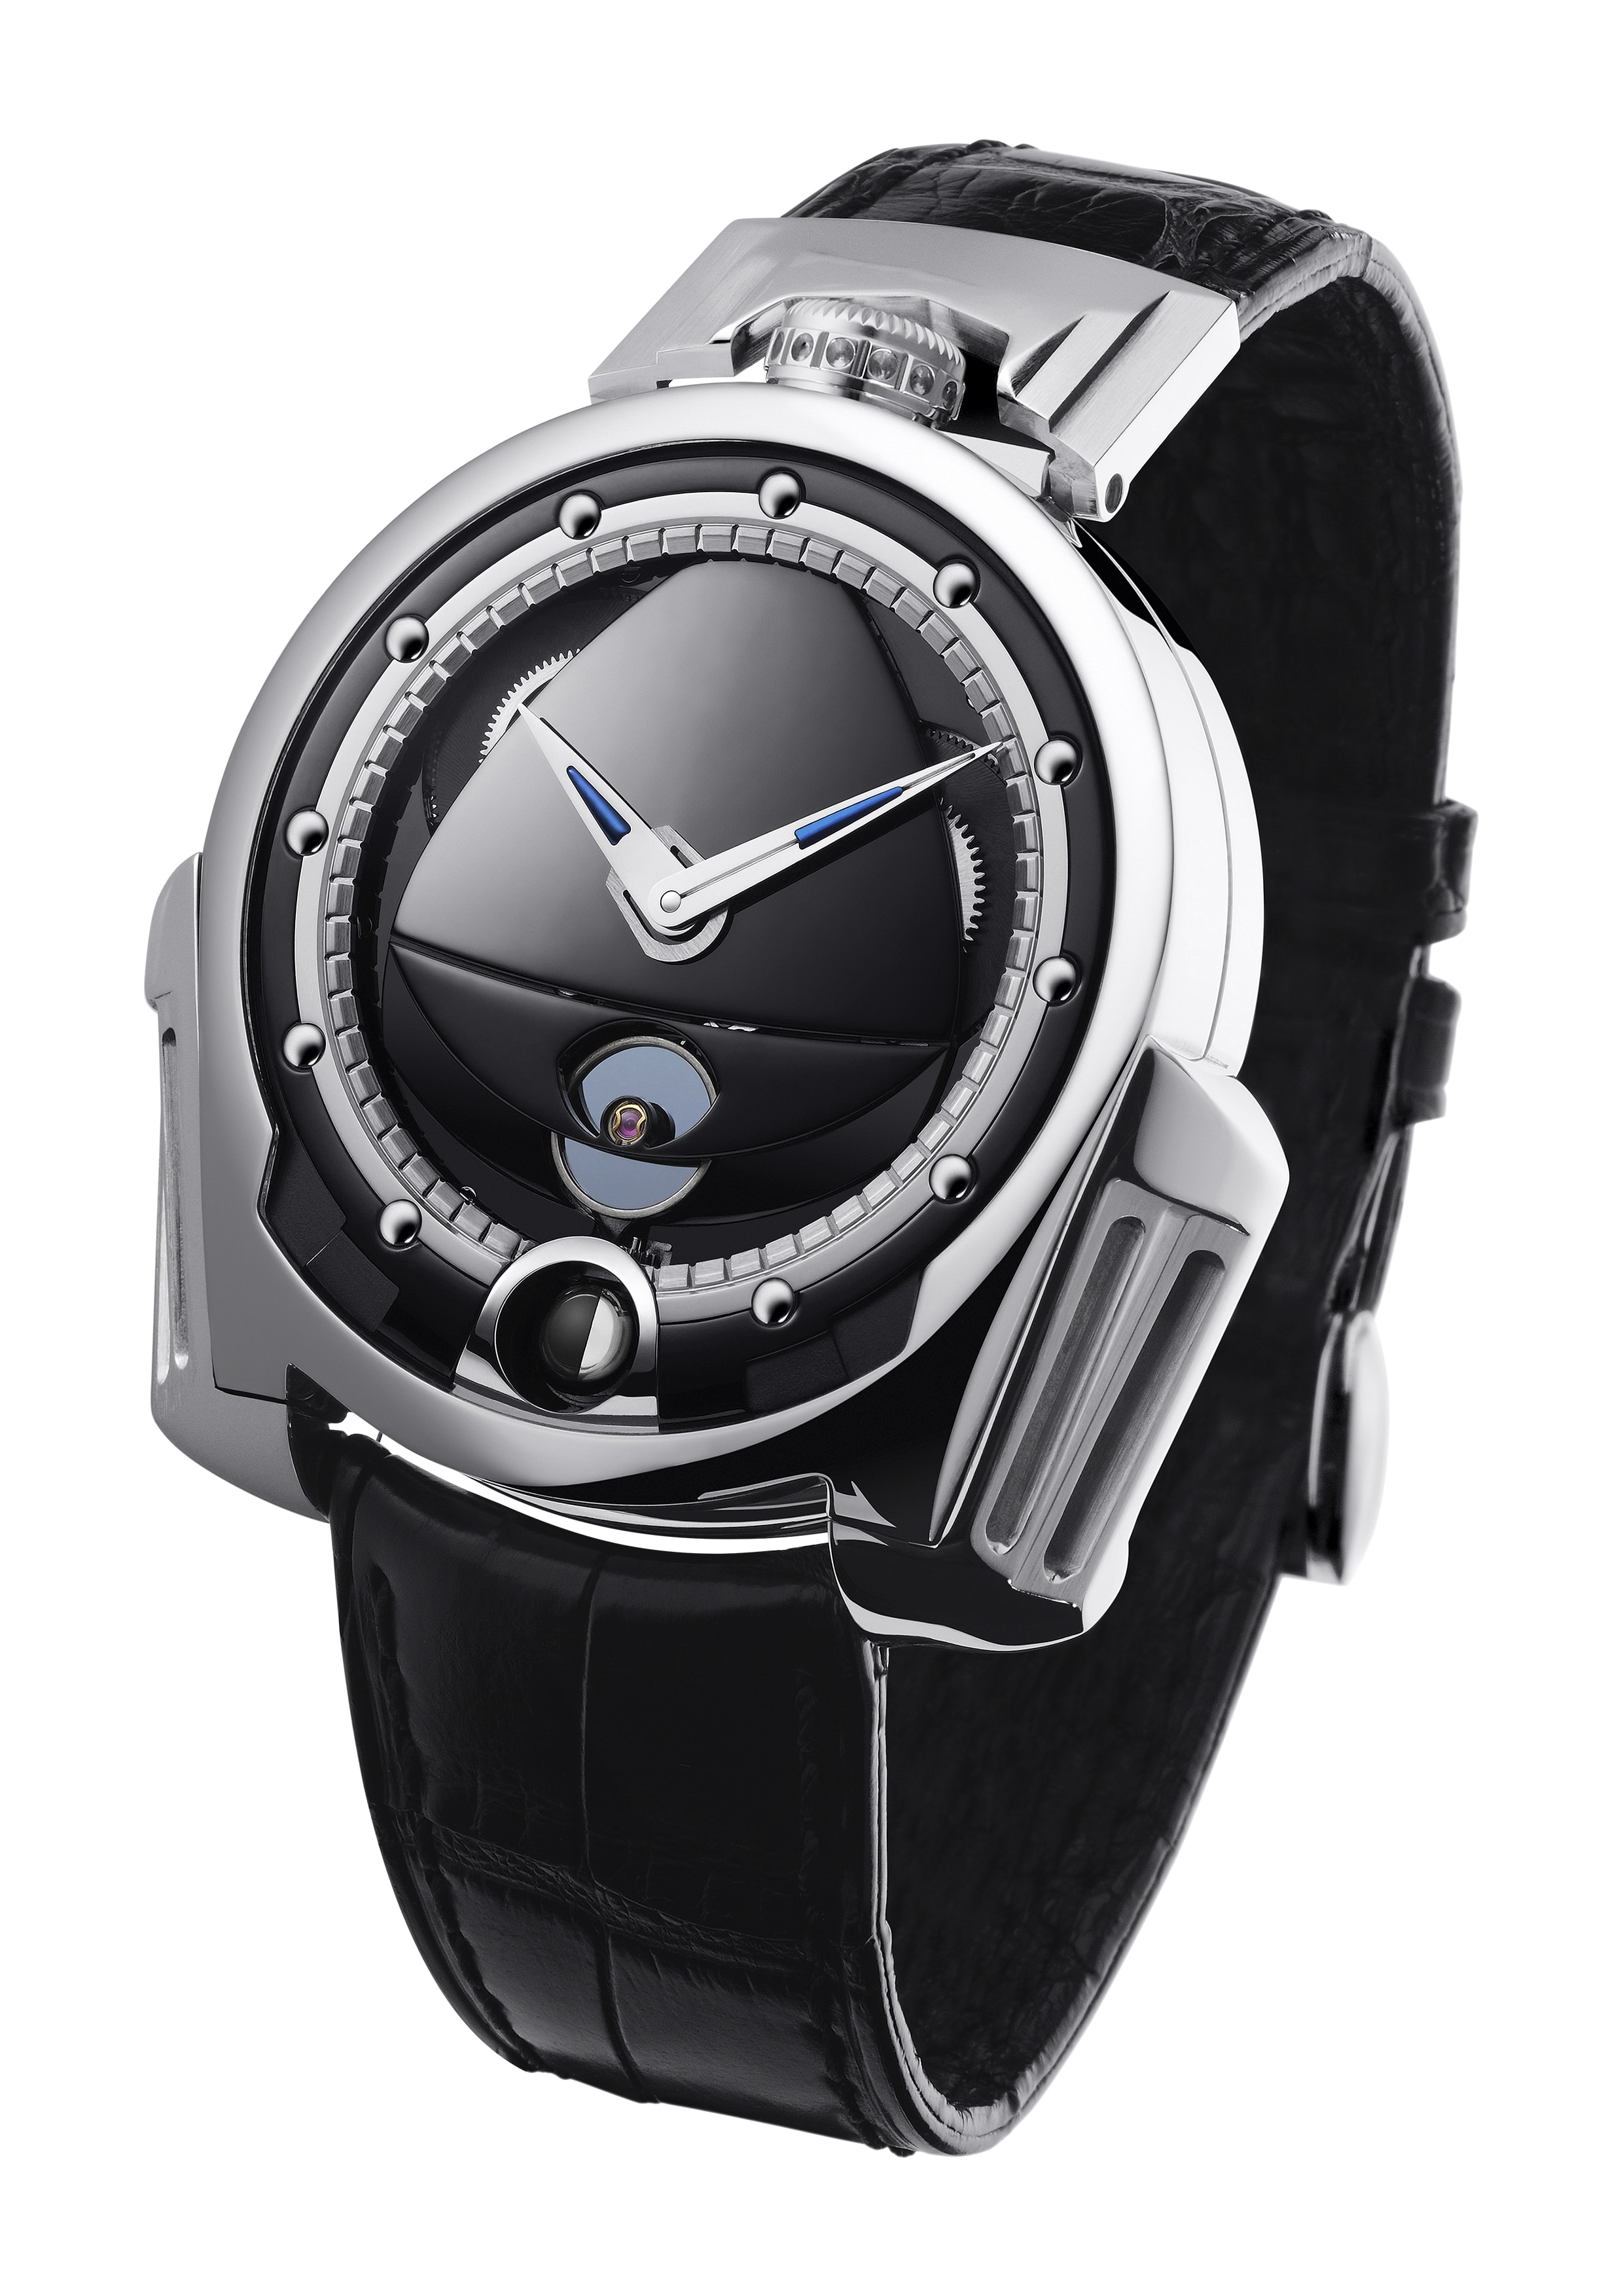 De Bethune Dream Watch with silicon / platinum annular balance (2009) Technical Perspective: A Conversation With De Bethune's Denis Flageollet Technical Perspective: A Conversation With De Bethune's Denis Flageollet 2009